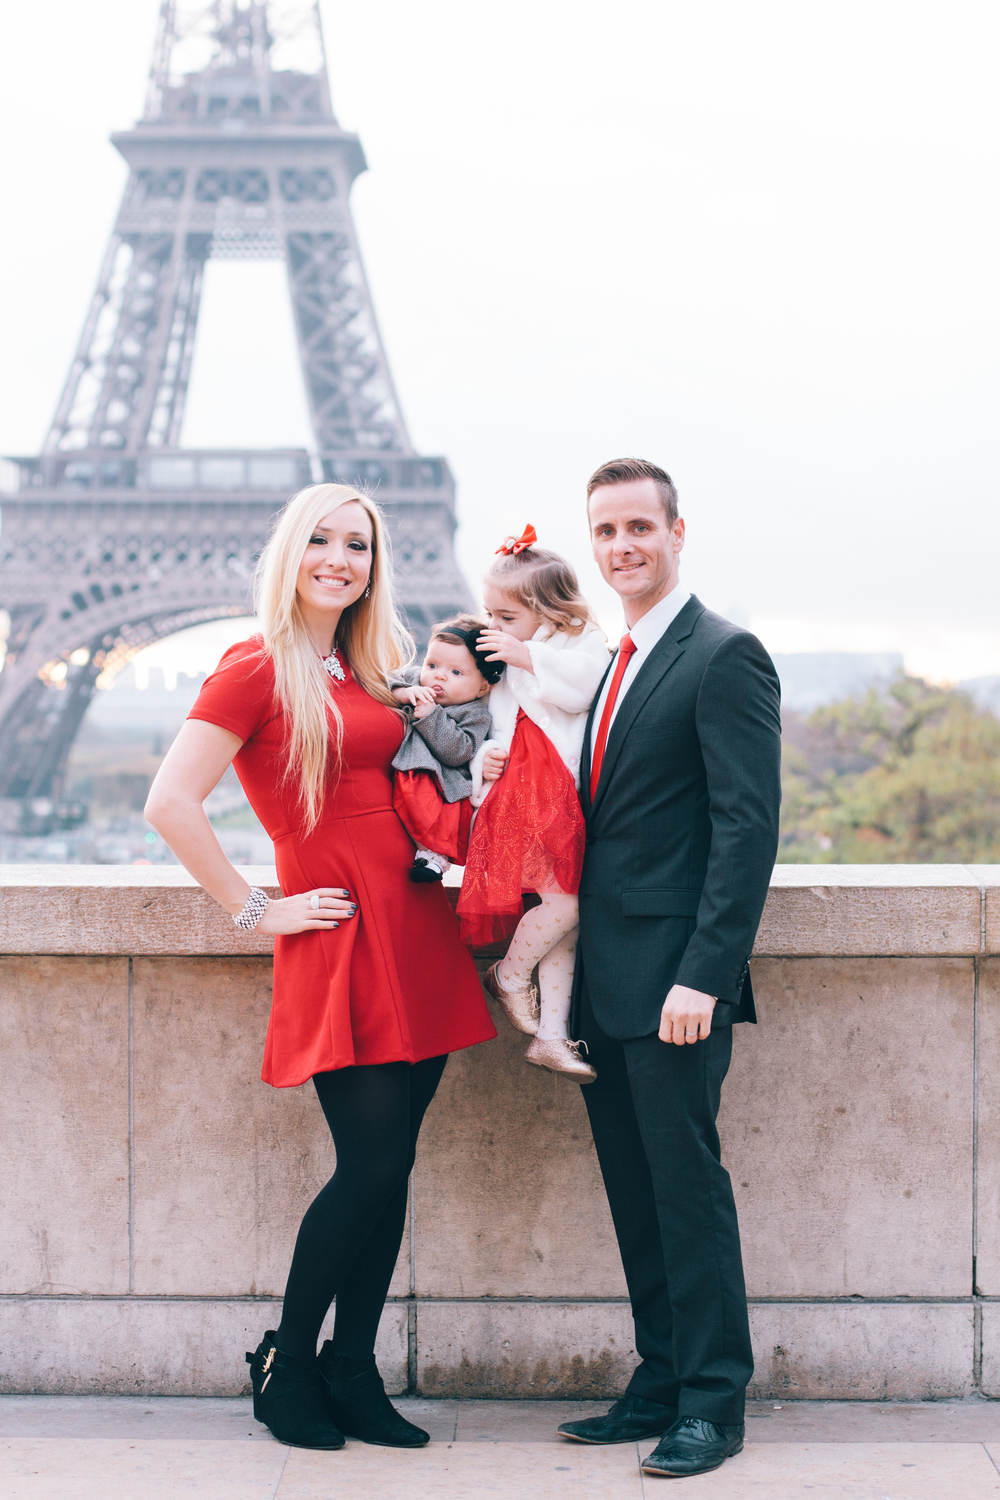 FLYTOGRAPHER | Paris Vacation Photographer - 1